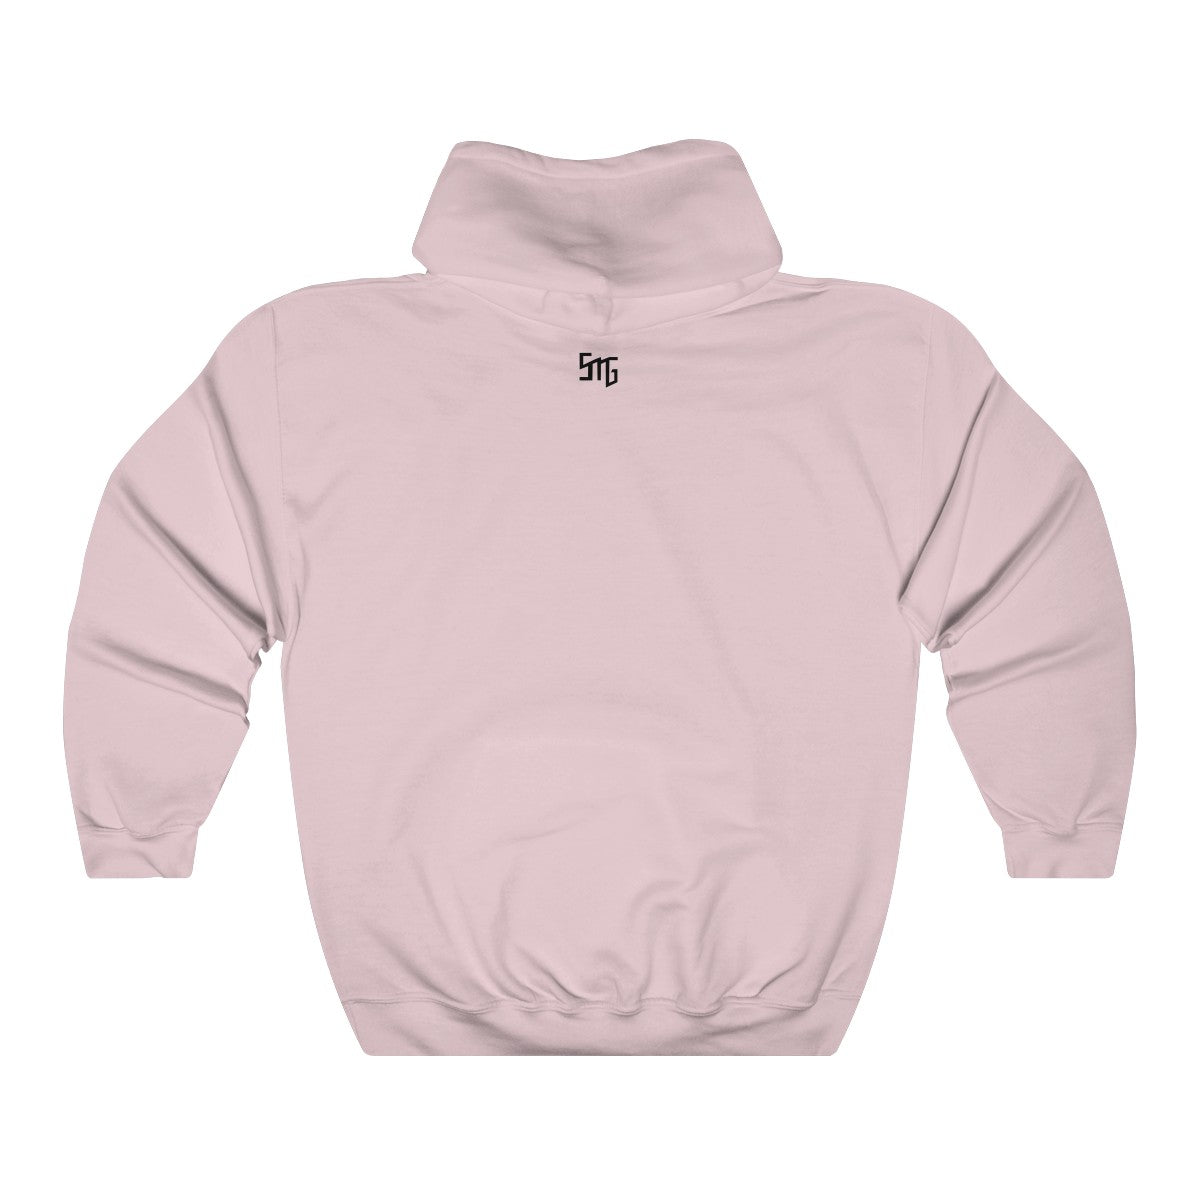 Elly Elz iTrap Hooded Sweatshirt